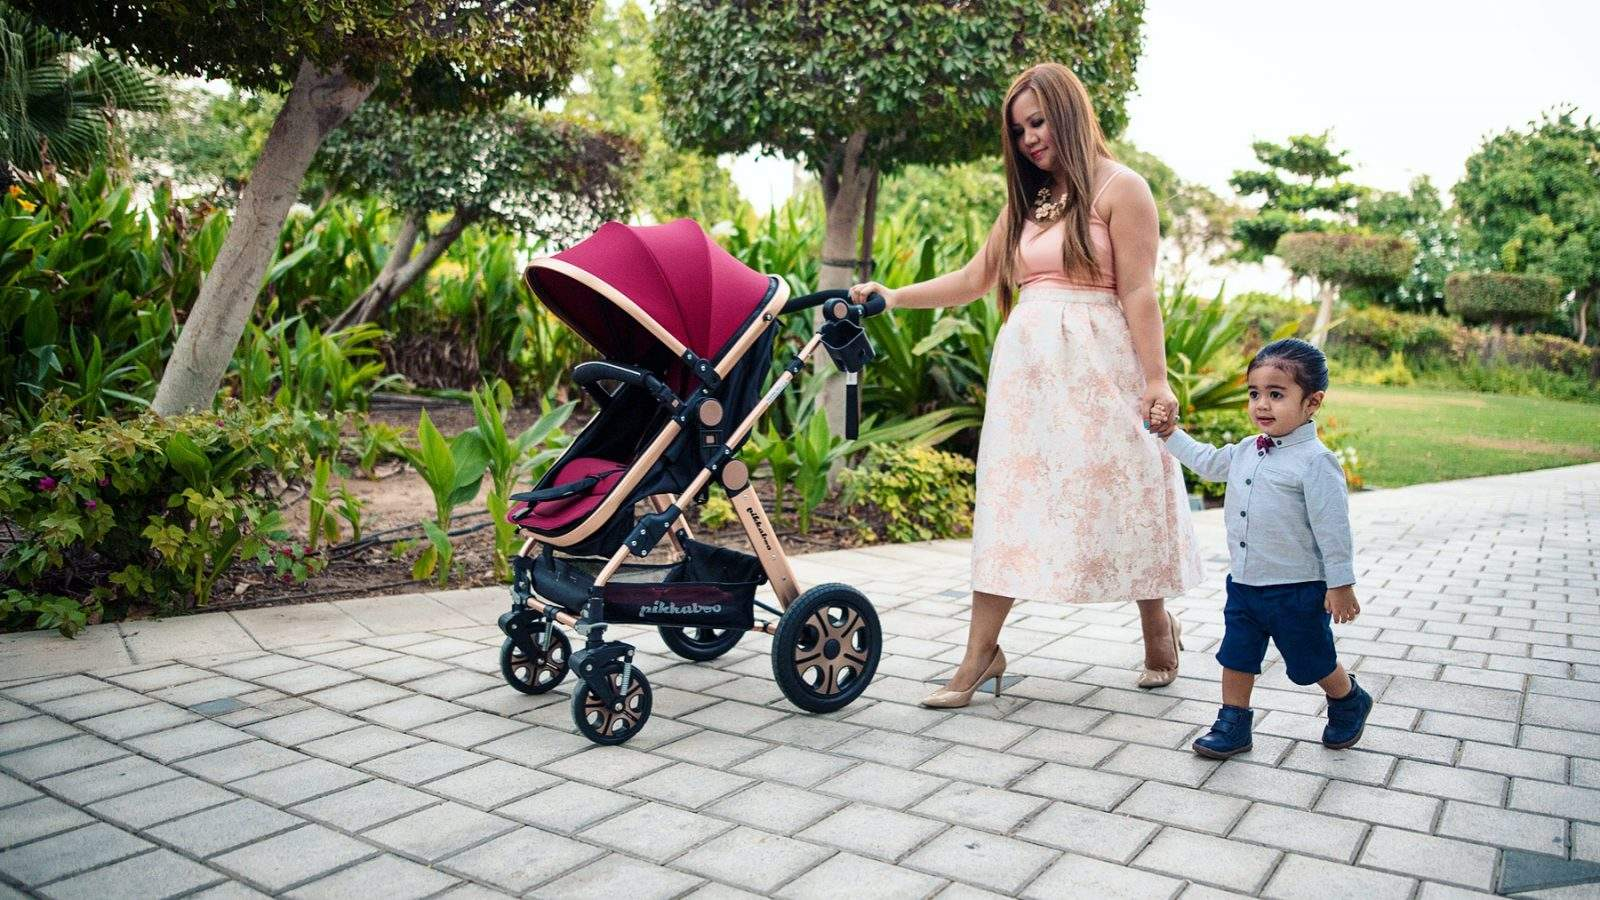 Stroll In Style | Pikkaboo 2in1 Bassinet And Stroller